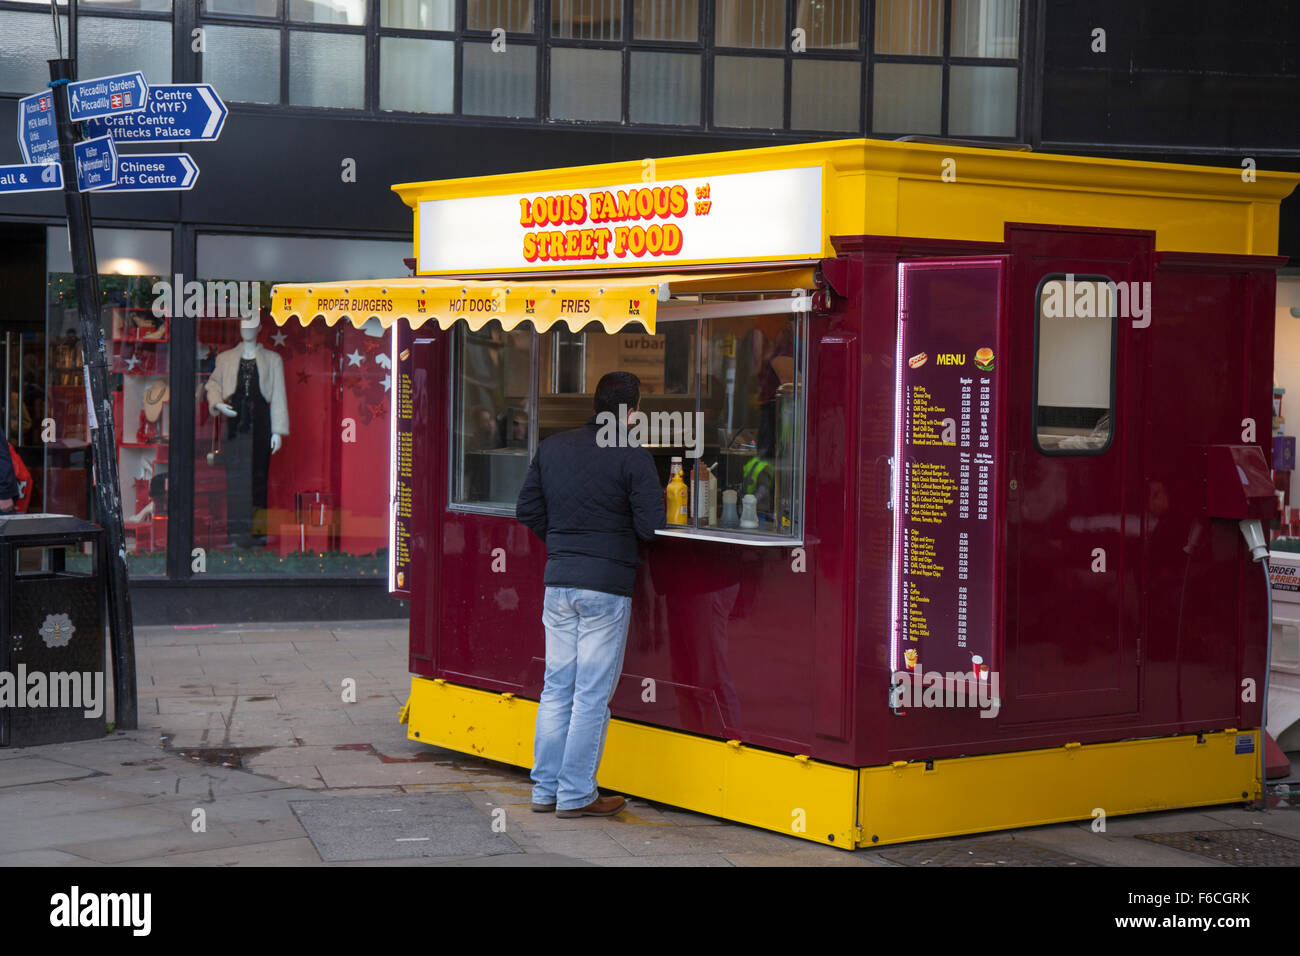 Famous Street food Kiosk in Manchester, City centre, UK - Stock Image